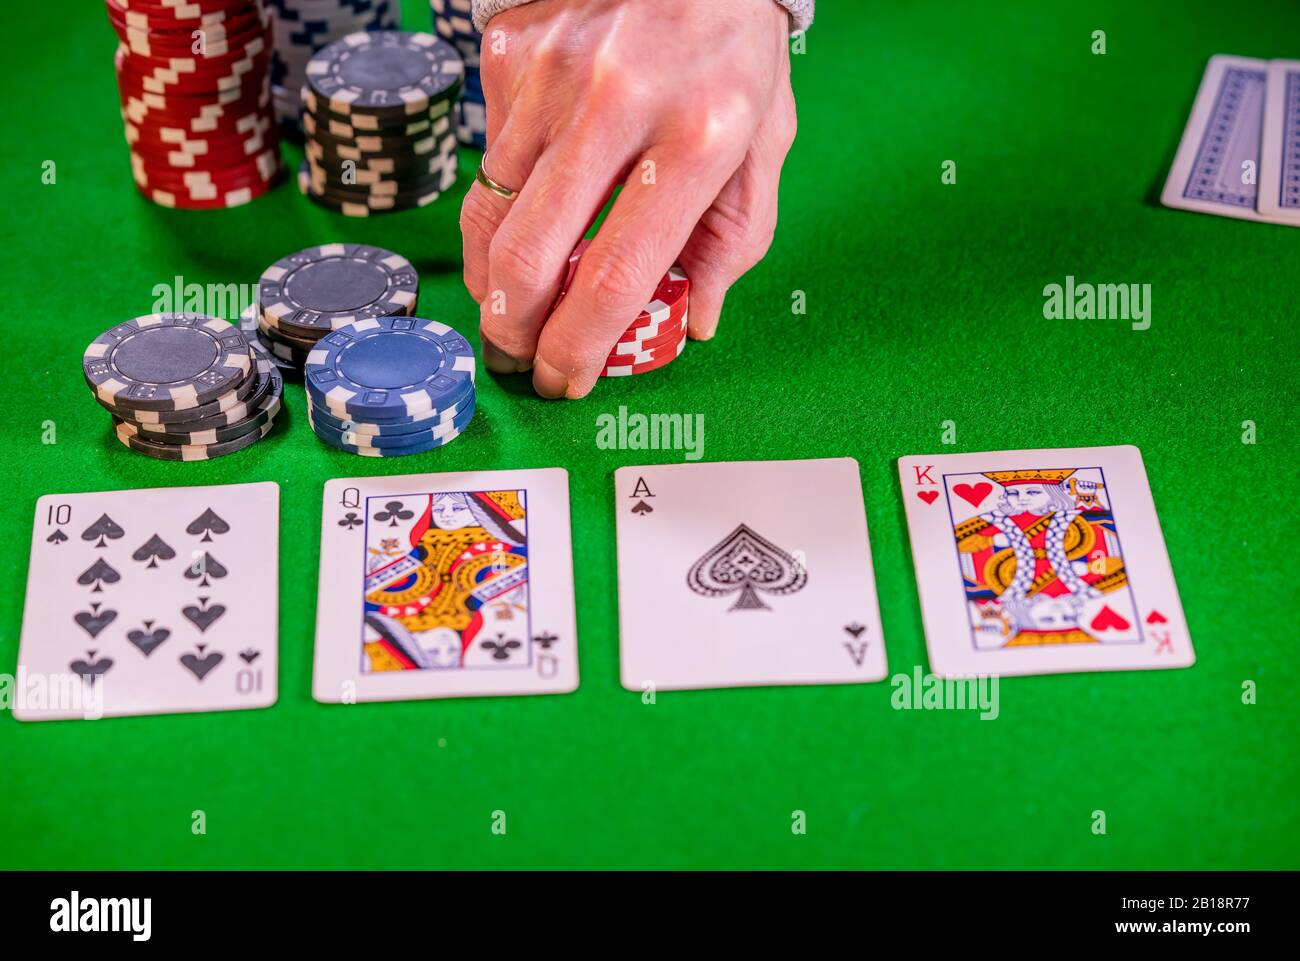 Placing Bet High Resolution Stock Photography And Images Alamy